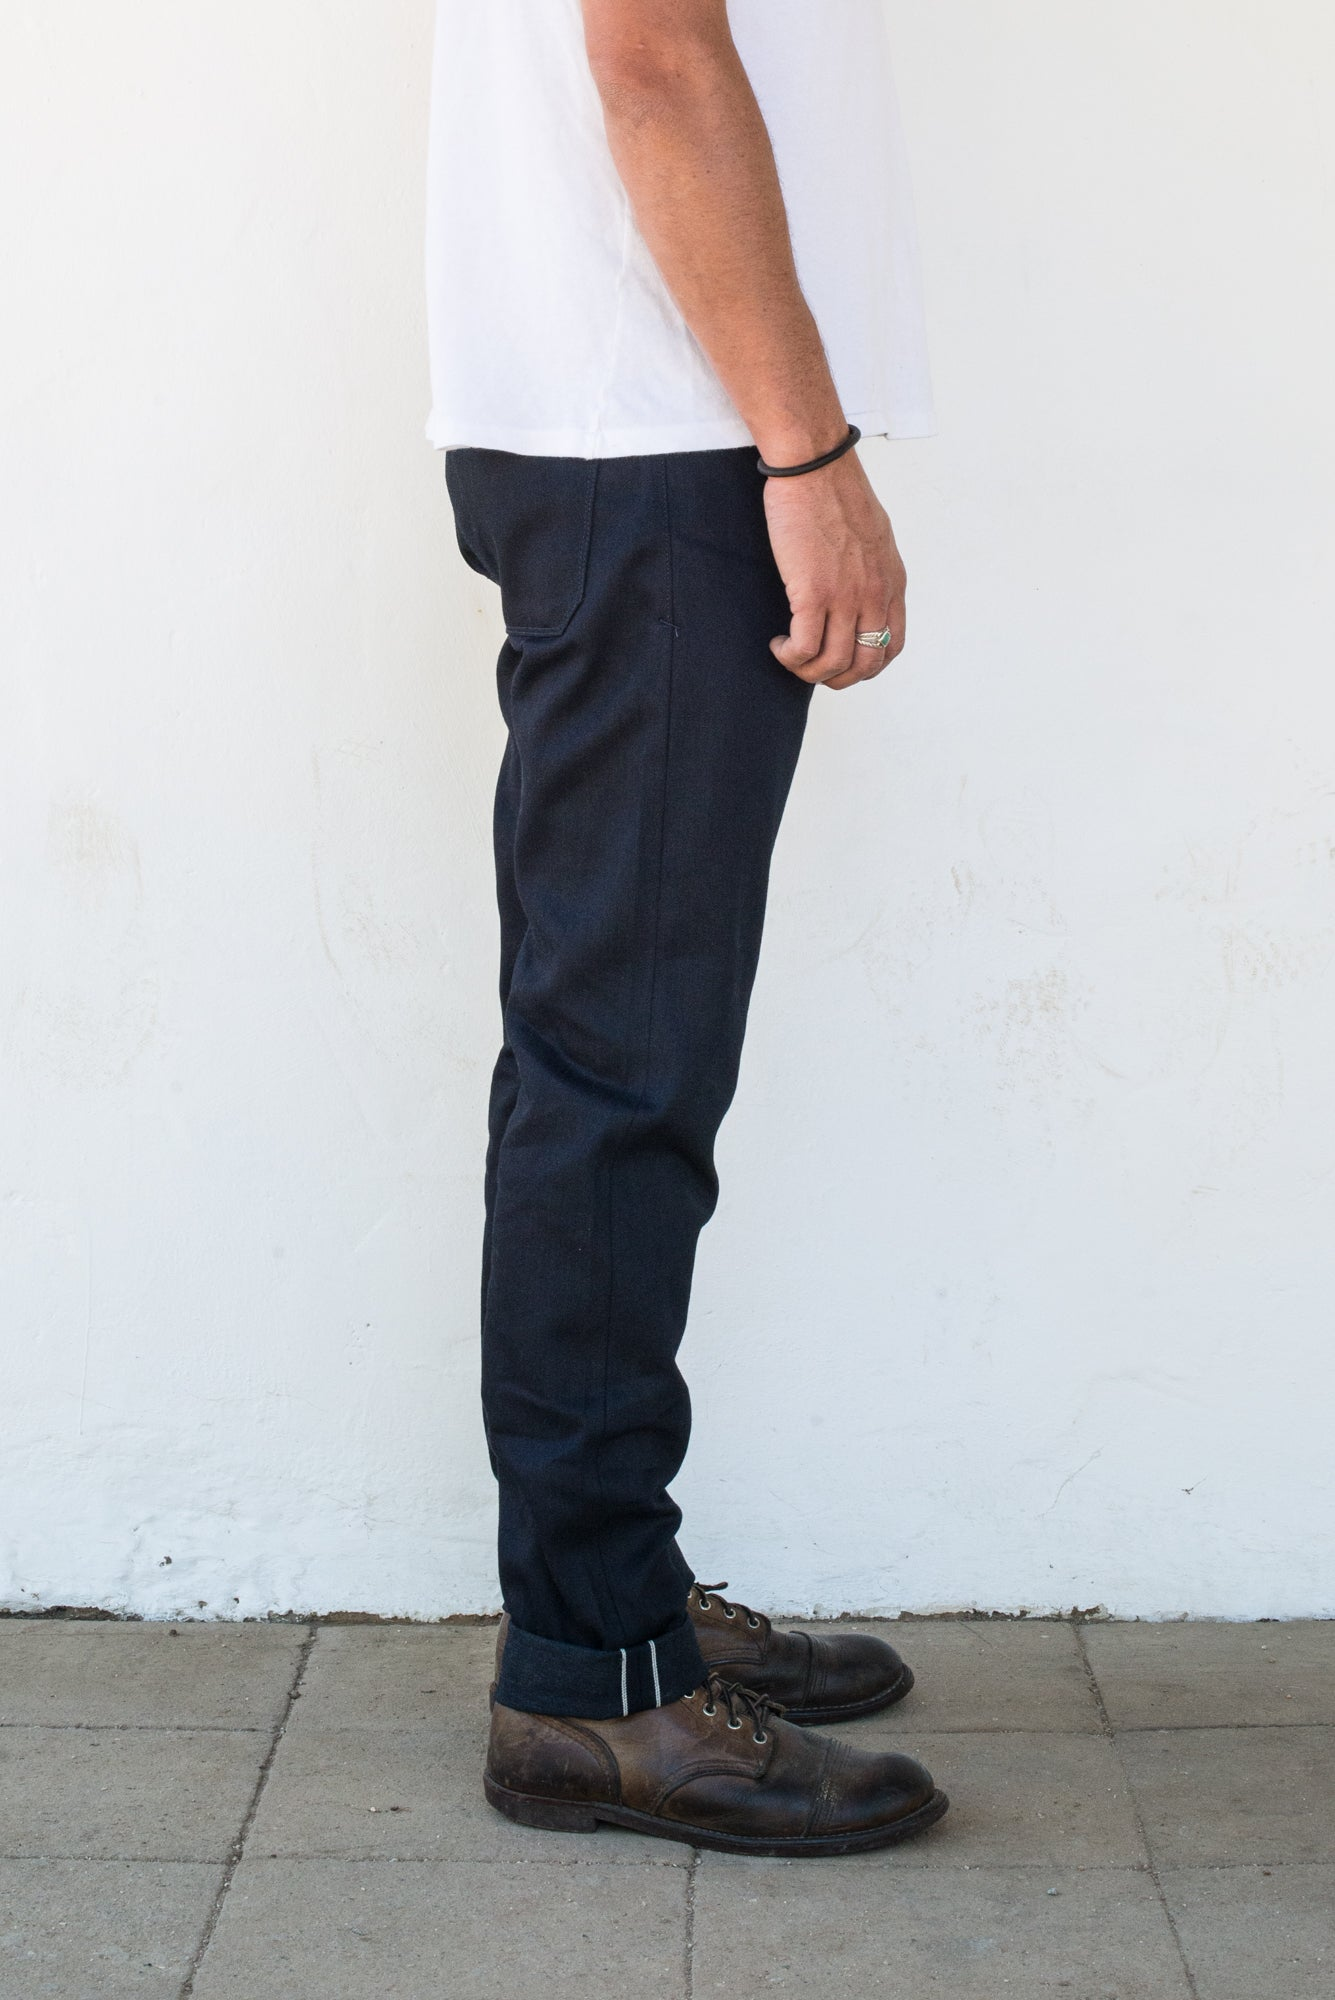 Portola 14.75 oz Blue Black Japanese Denim On Model Right Side